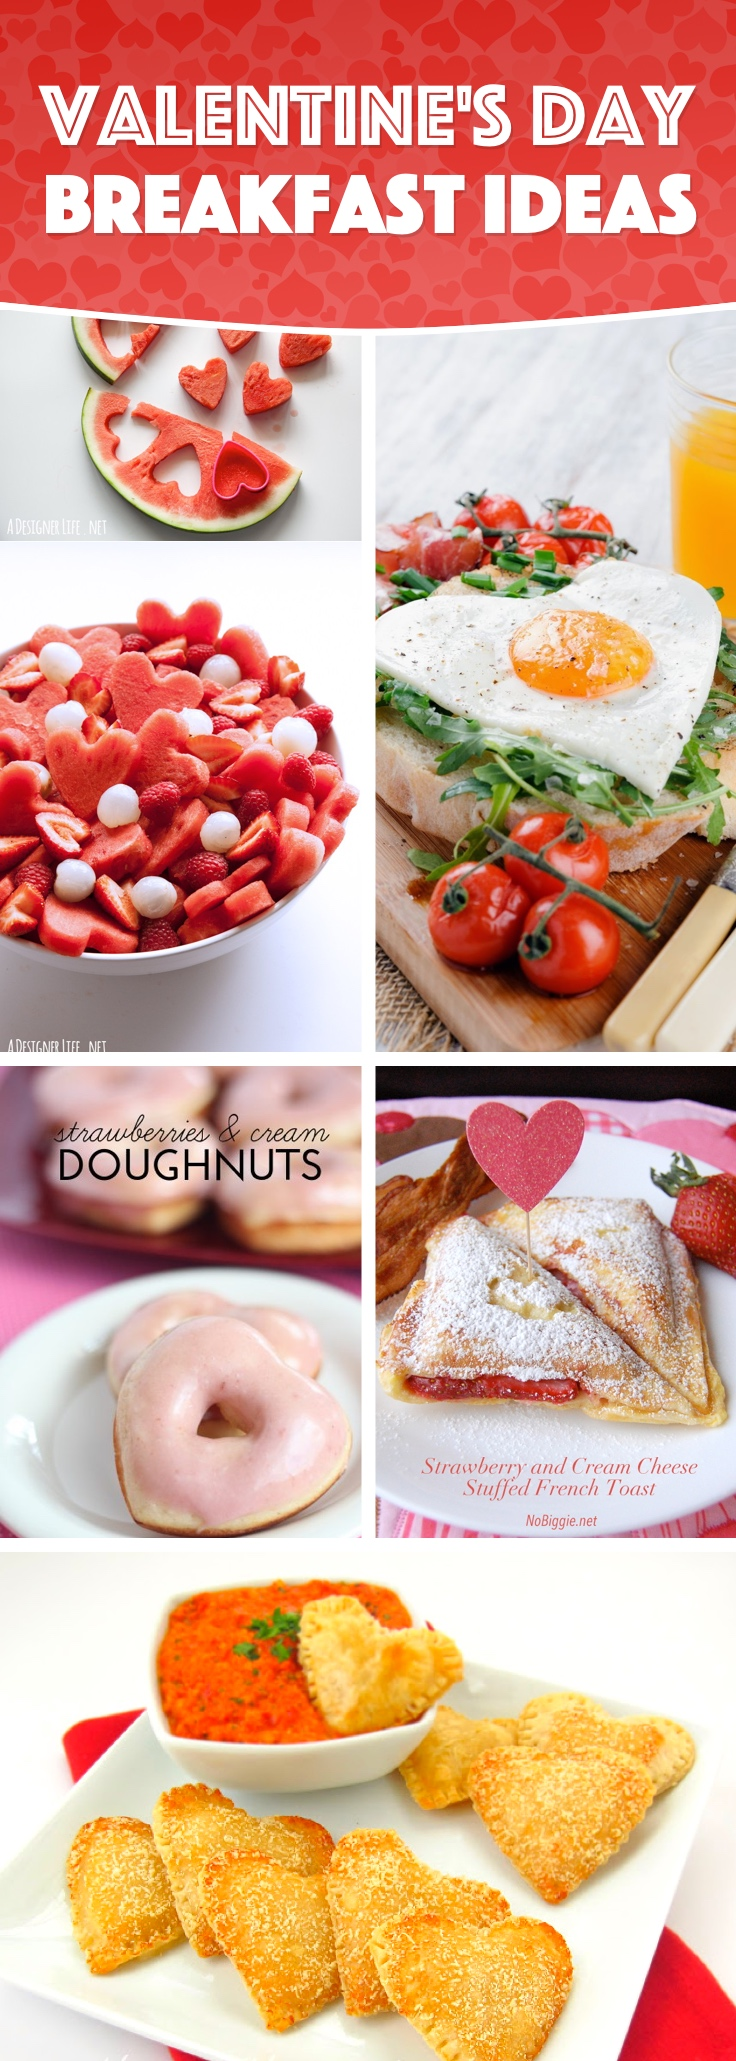 24 Incredible Valentine S Day Breakfast Ideas Introducing